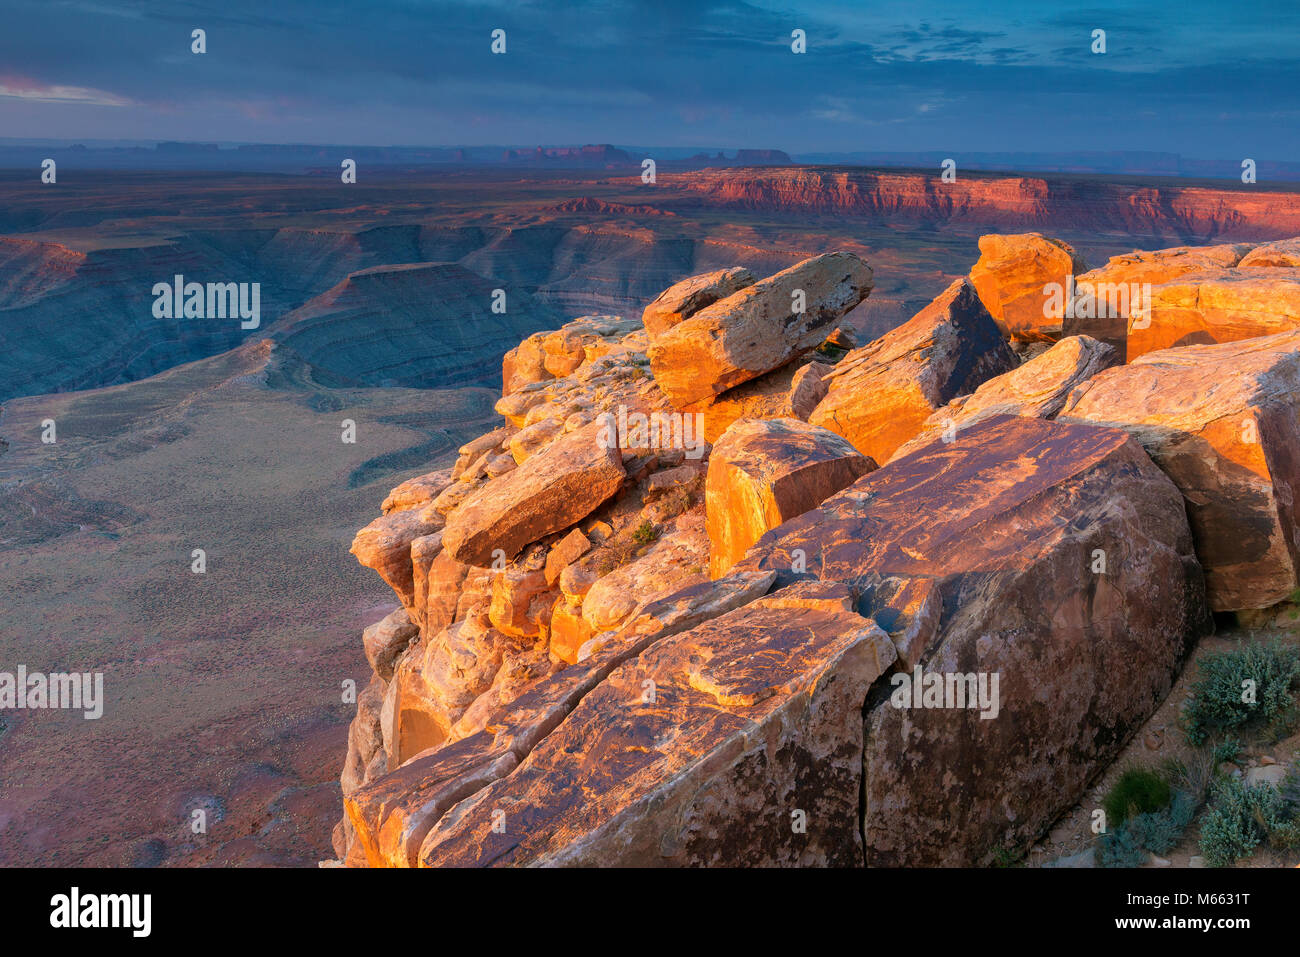 Amanecer, Muley Point, Monument Valley, Glen Canyon National Recreation Area, Utah Imagen De Stock